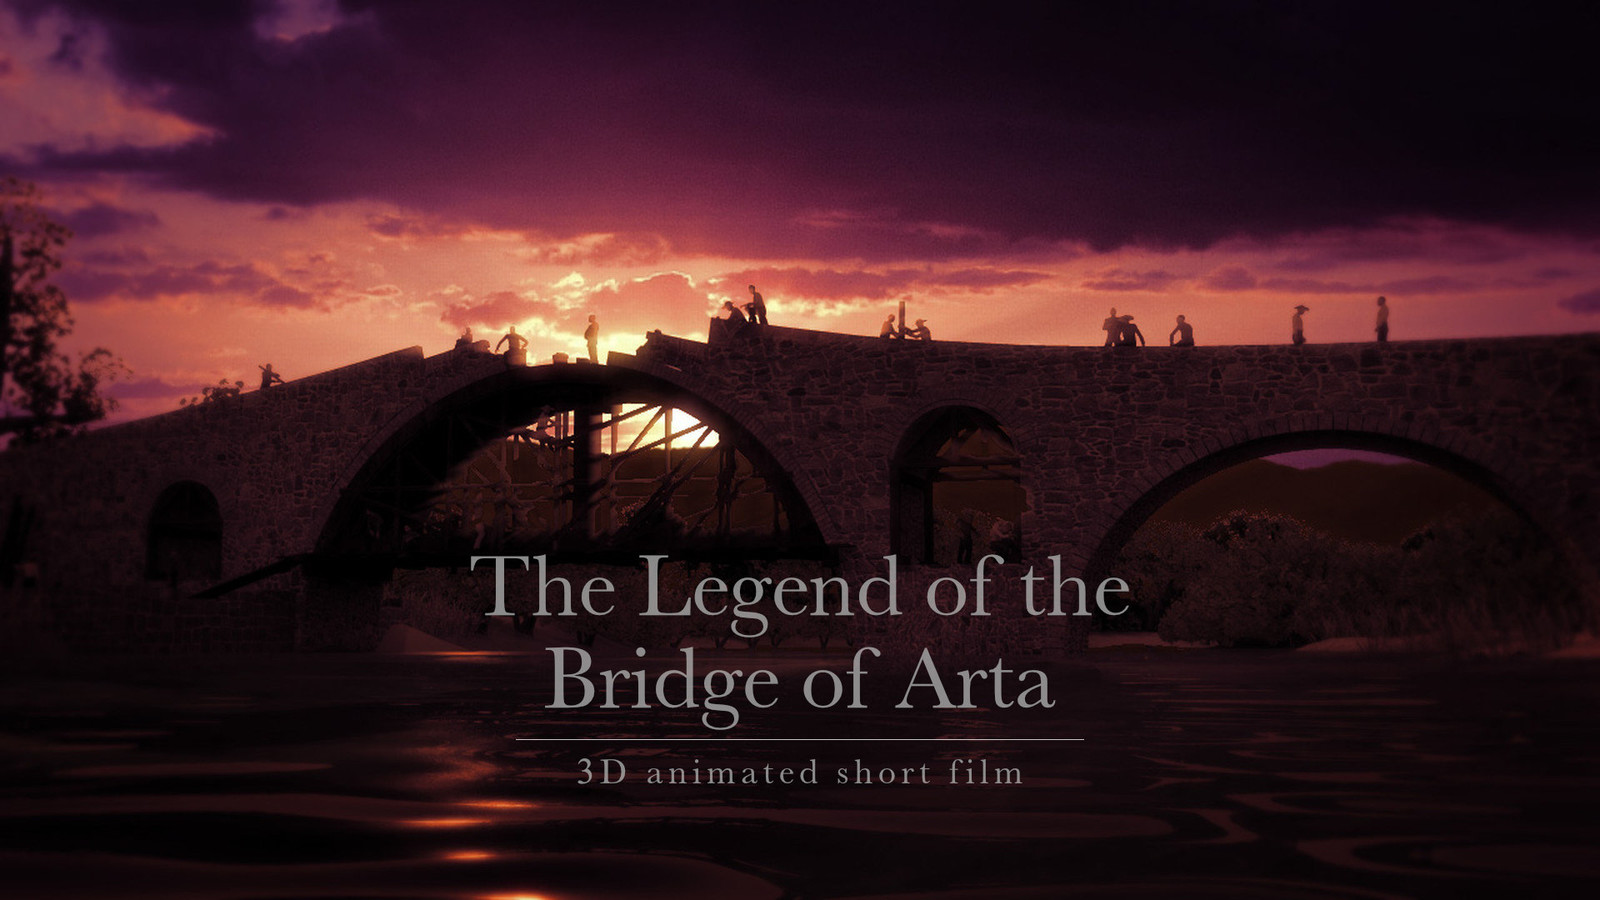 The Legend of Arta's Bridge (2014) - 3D animated short